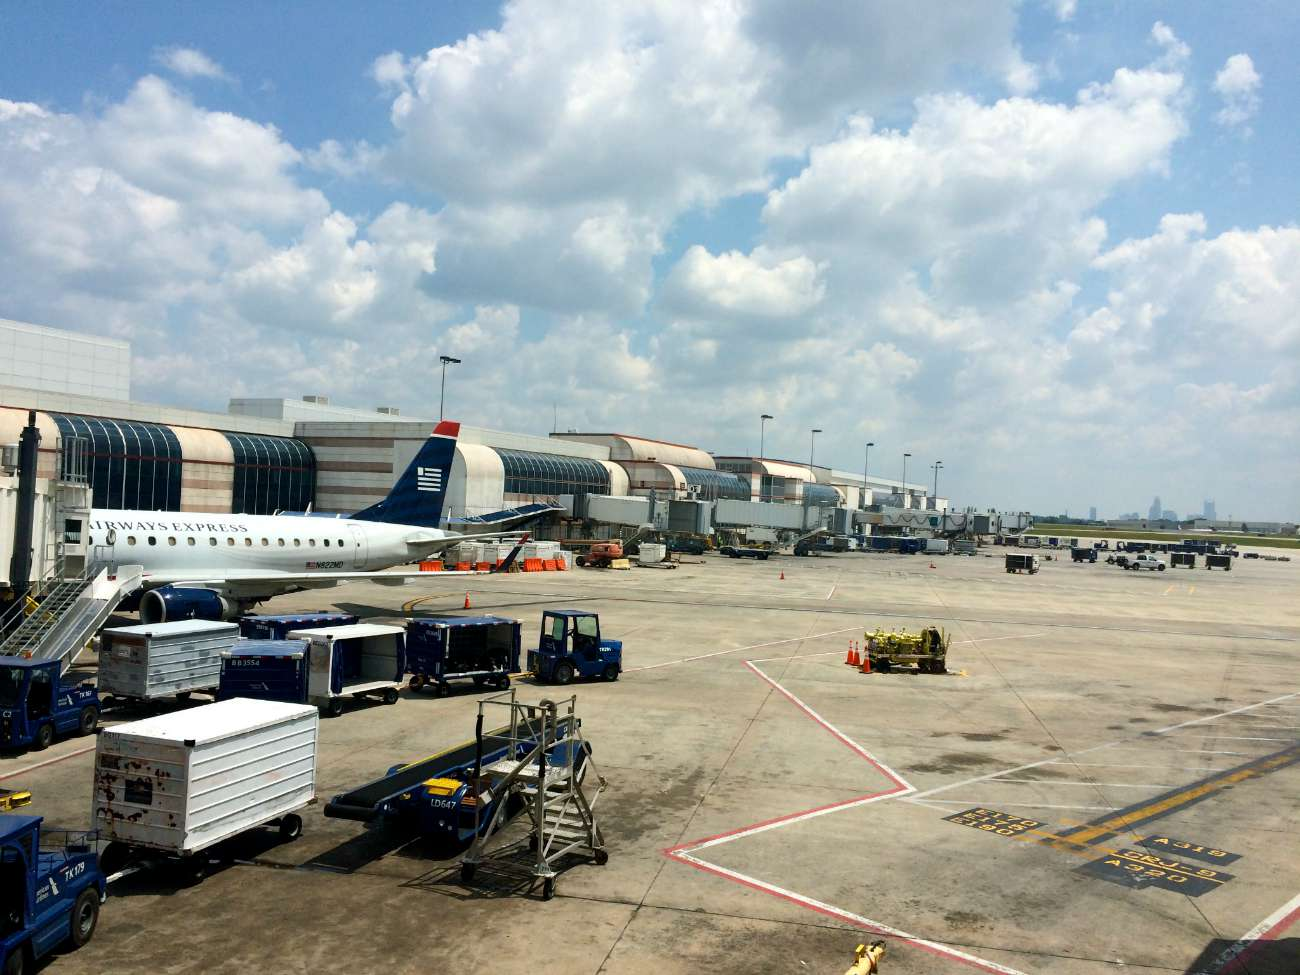 Charlotte's airport is in the middle of $2.5 billion in construction. See the latest on 8 major projects